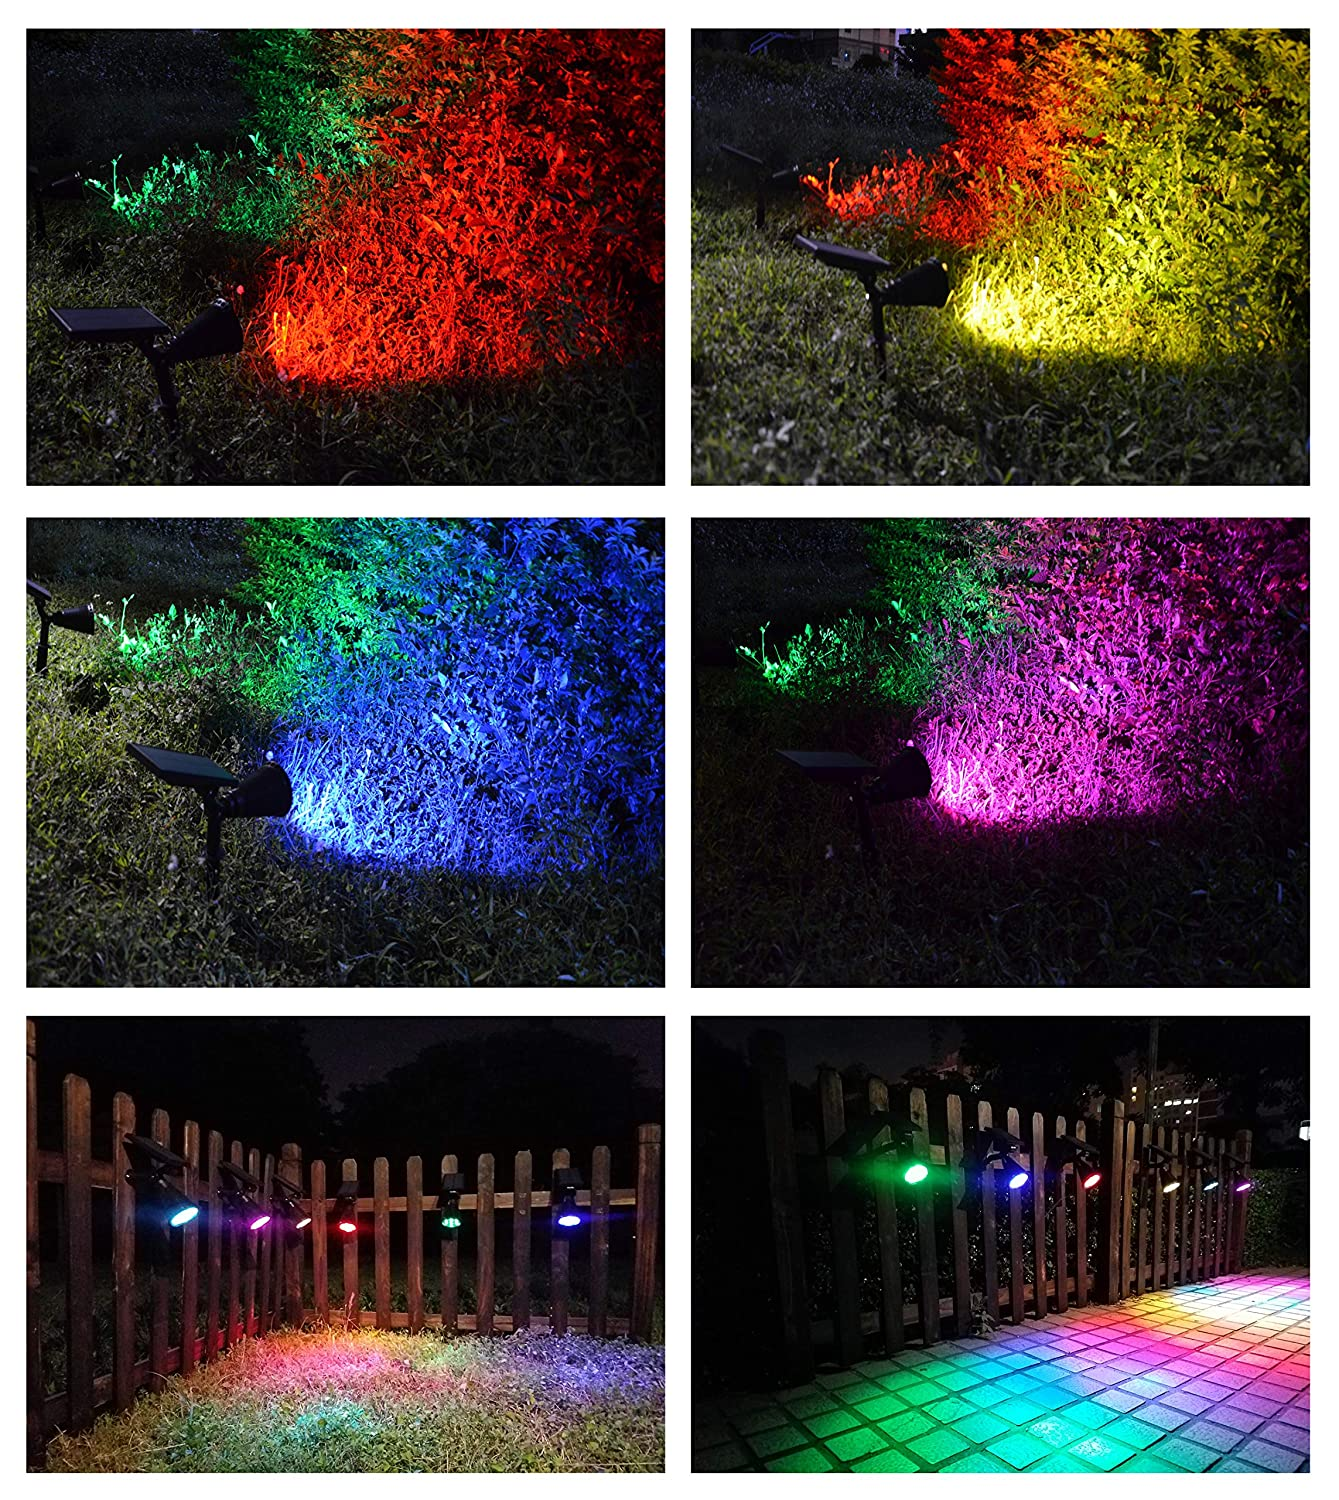 Amazon.com : Lapeort Solar Lights Outdoor 2-in-1 Waterproof Solar Spotlights Colored 7 LED Garden Wall Lighting Dusk to Dawn for Landscape Trees Yard ...